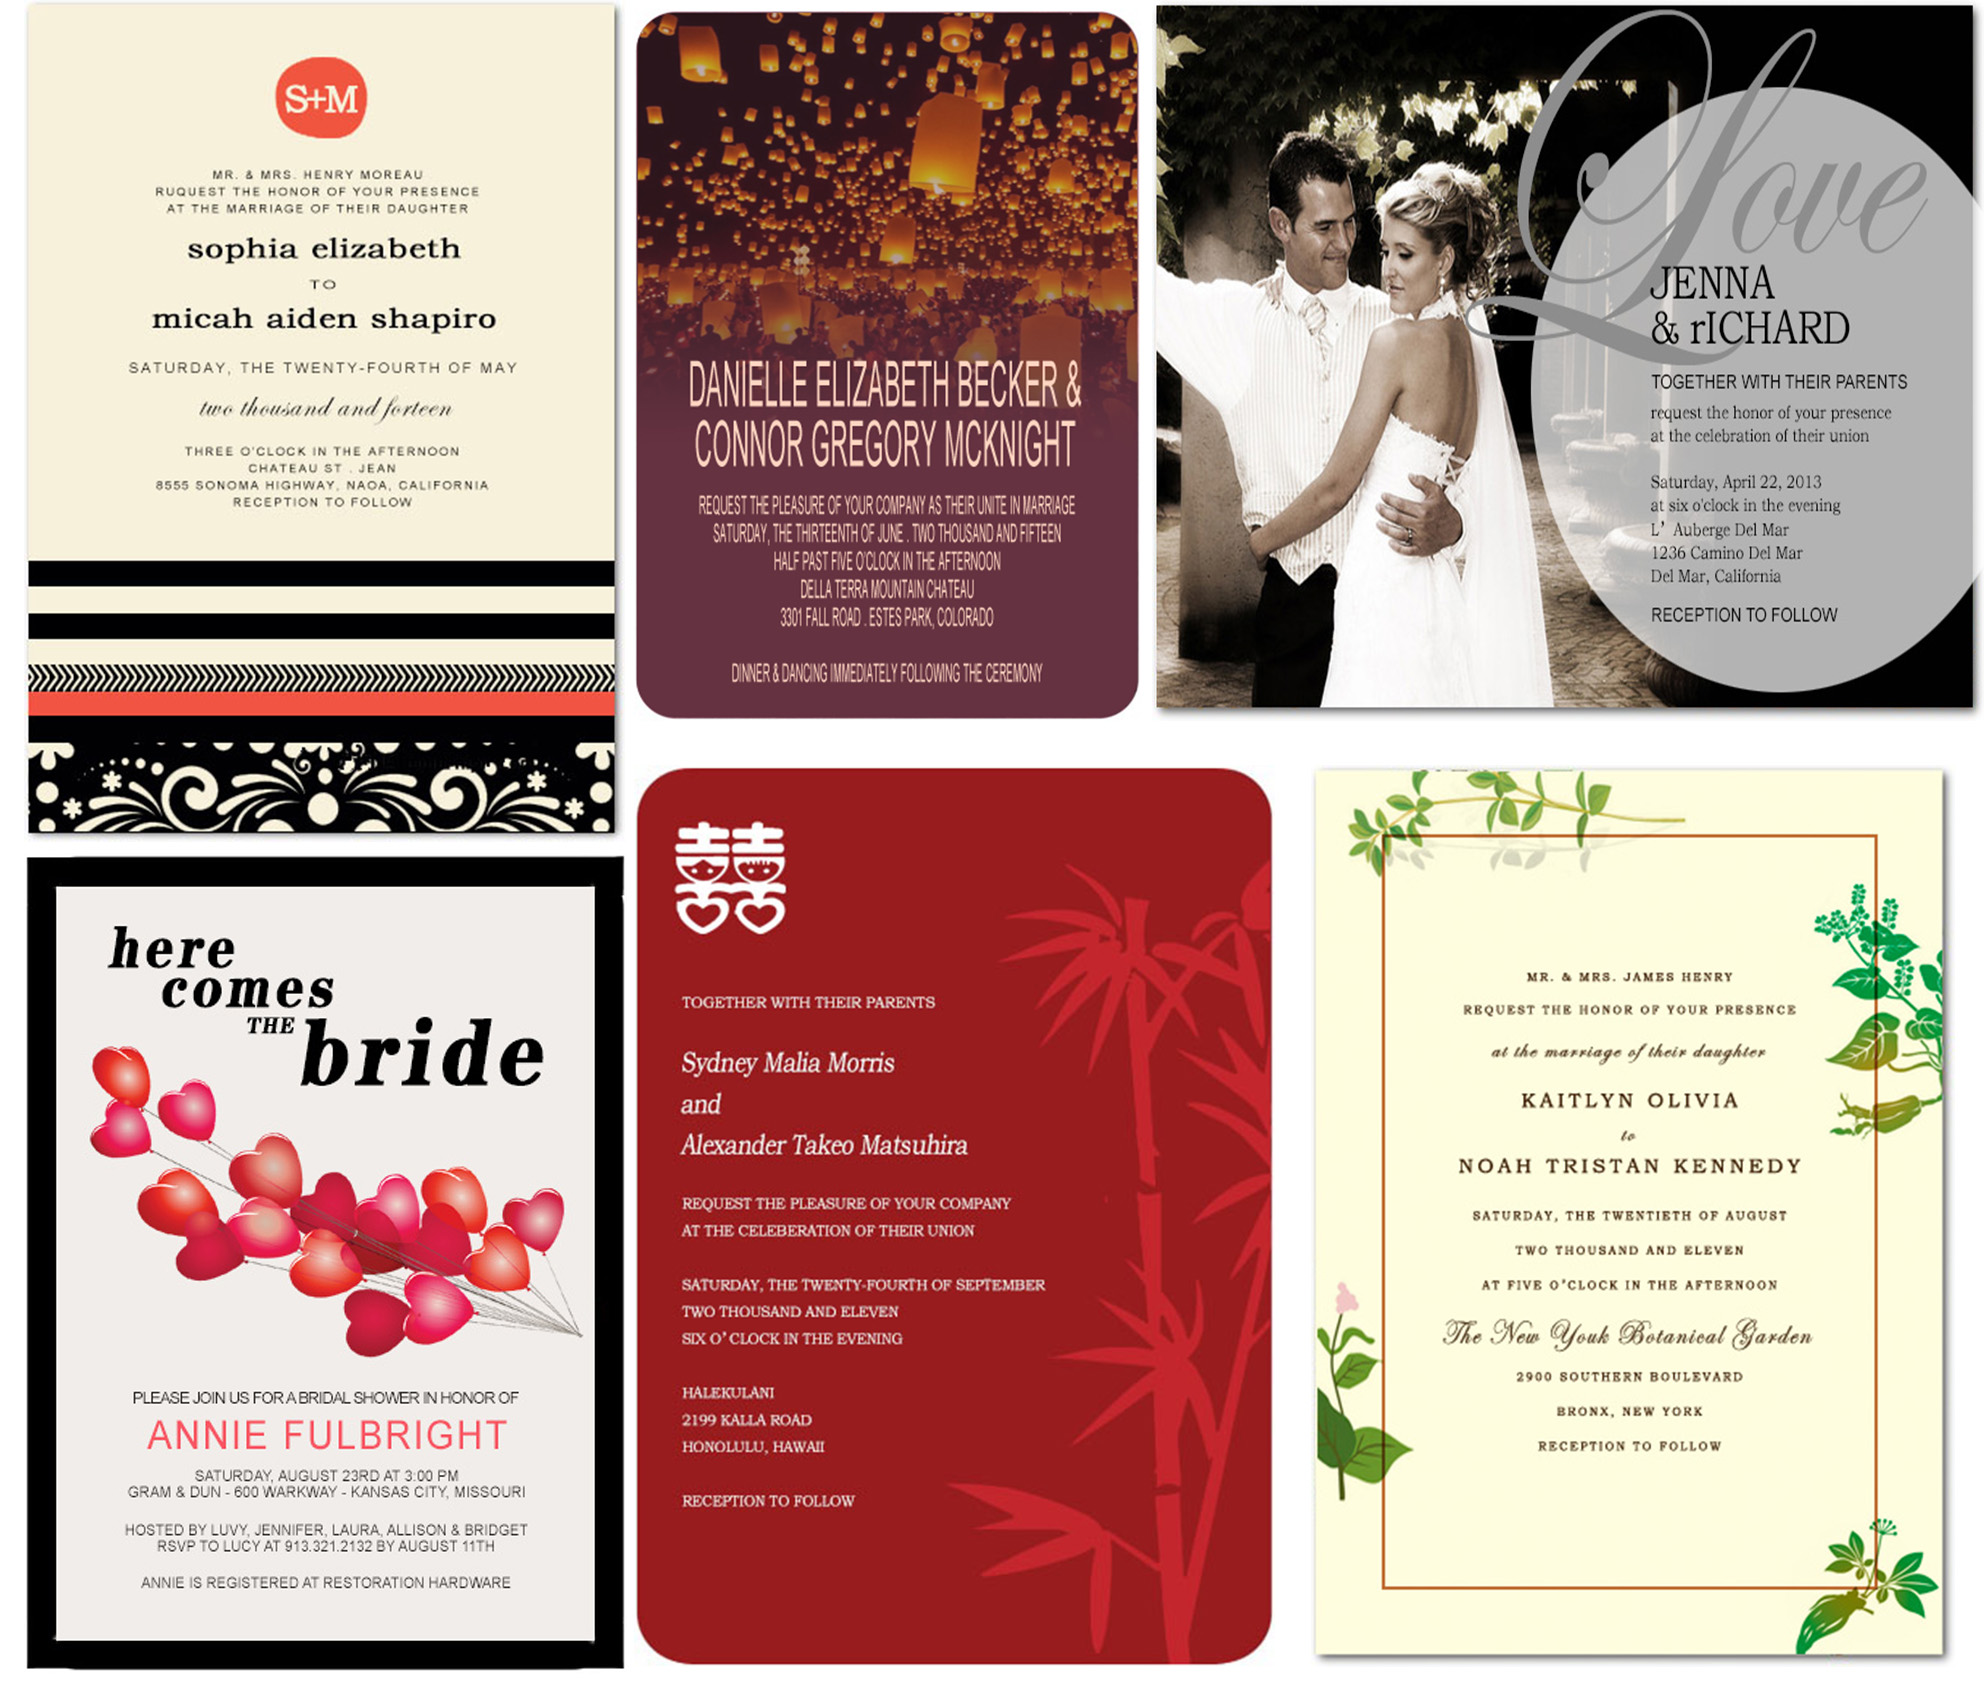 themed wedding party Archives - Happyinvitation.com Invitation World